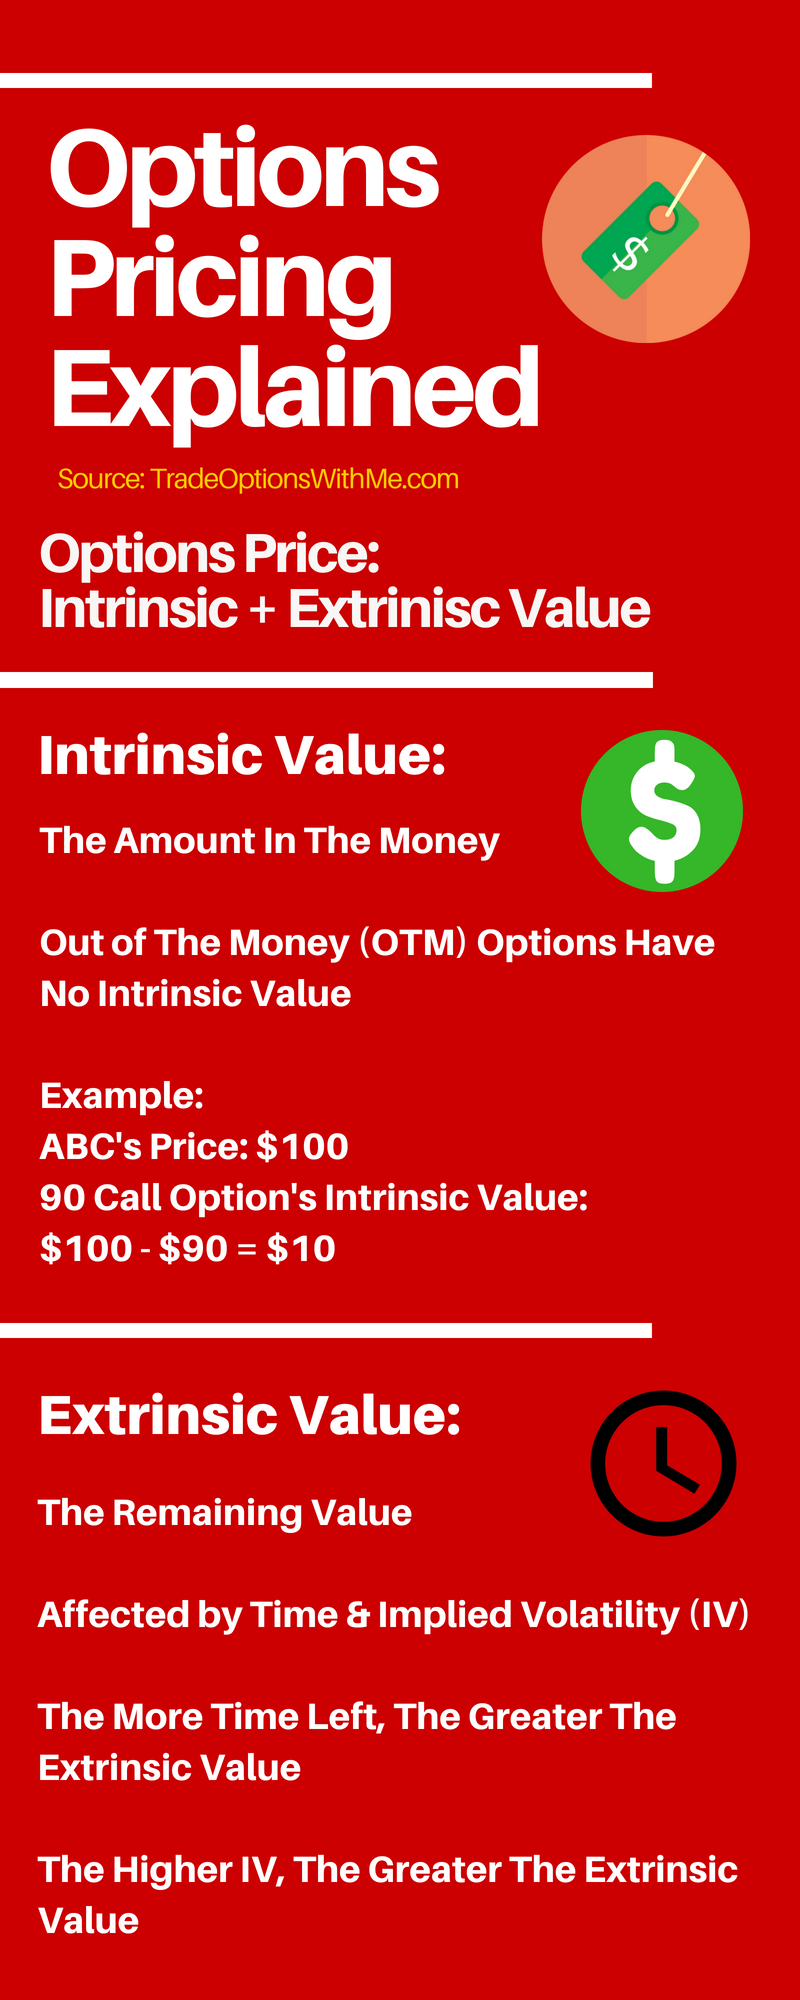 options pricing infographic